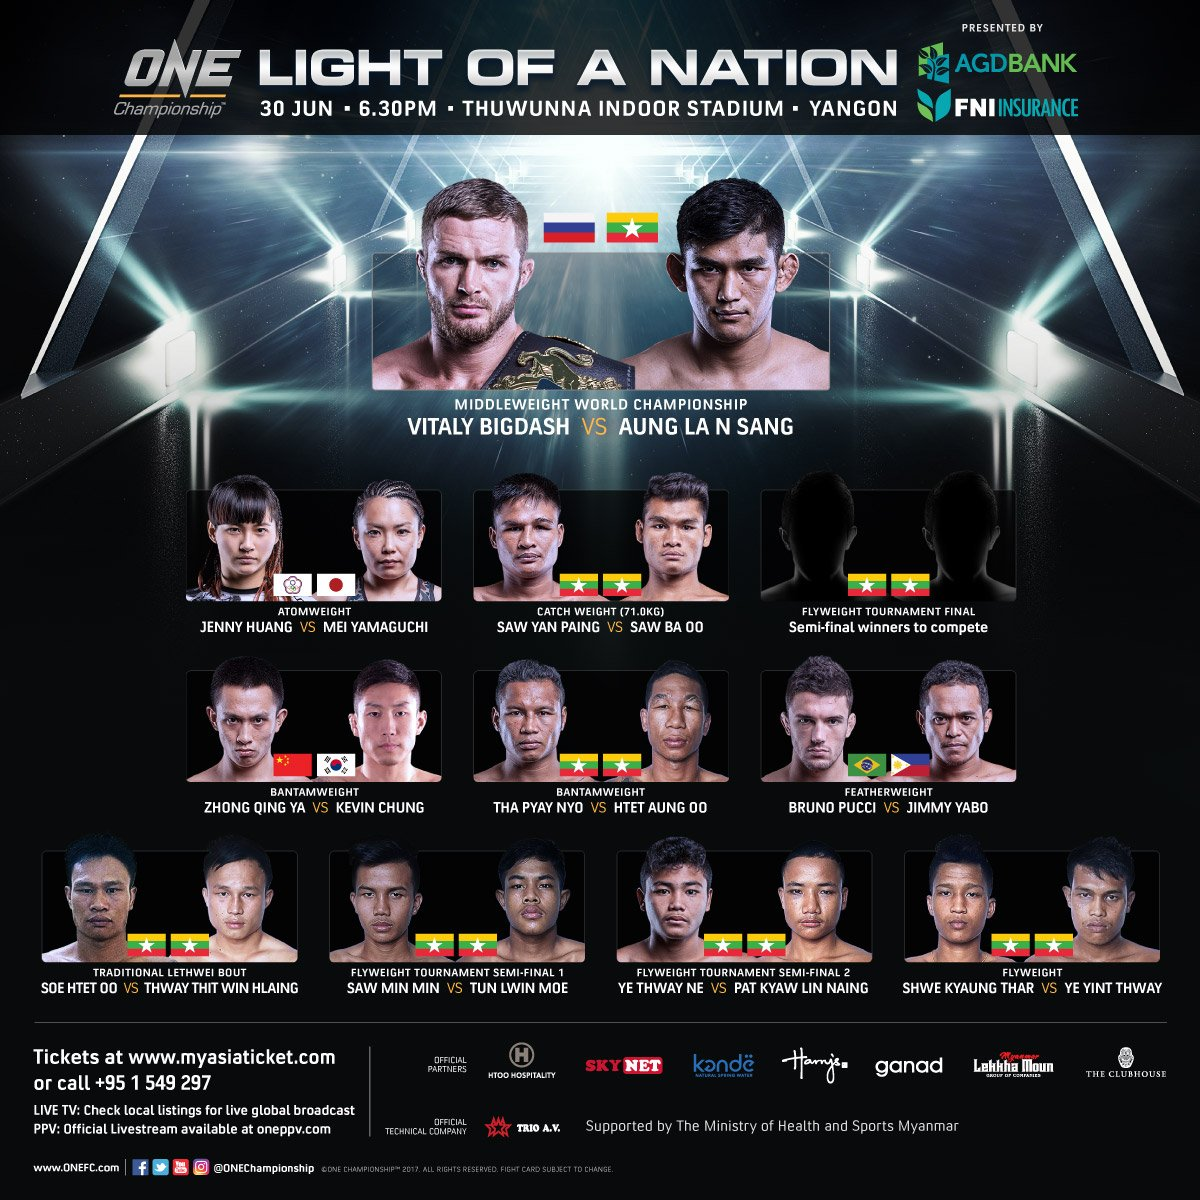 A nation lights up on 30 June. Will the stars shine?  #ONEFightNight #Yangon #Myanmar #MMA<br>http://pic.twitter.com/HR7WWsZMCU